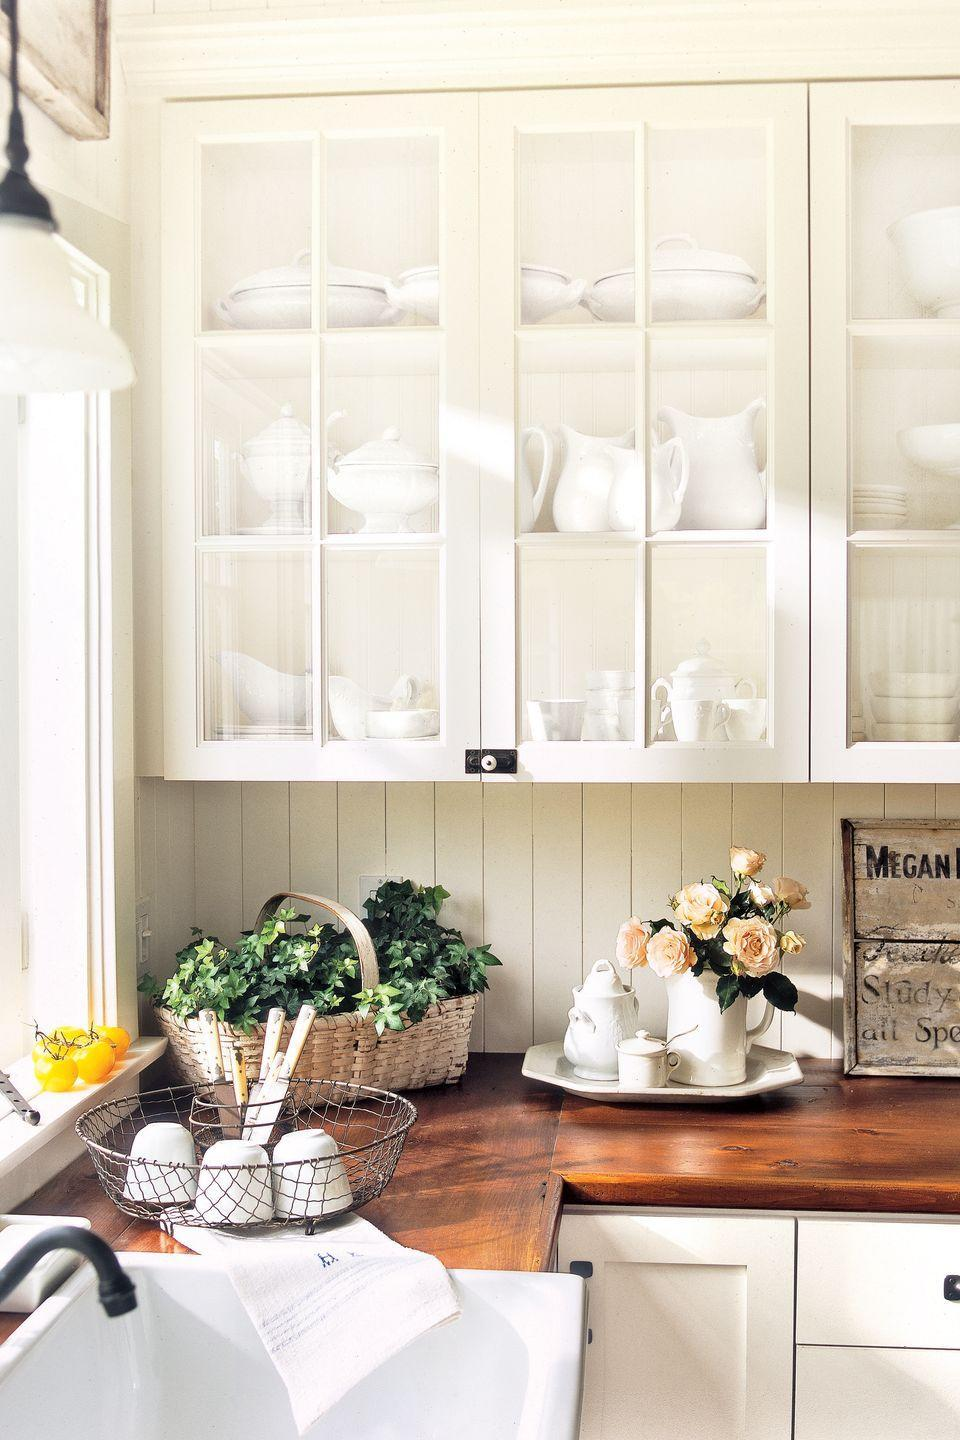 <p>White's inherent brightness makes an impact in an open-plan kitchen with high ceilings, providing additional light and opening up the space. The homeowner added cozy, unexpected old-house details—like kitchen countertops crafted from salvaged wood floors.</p>